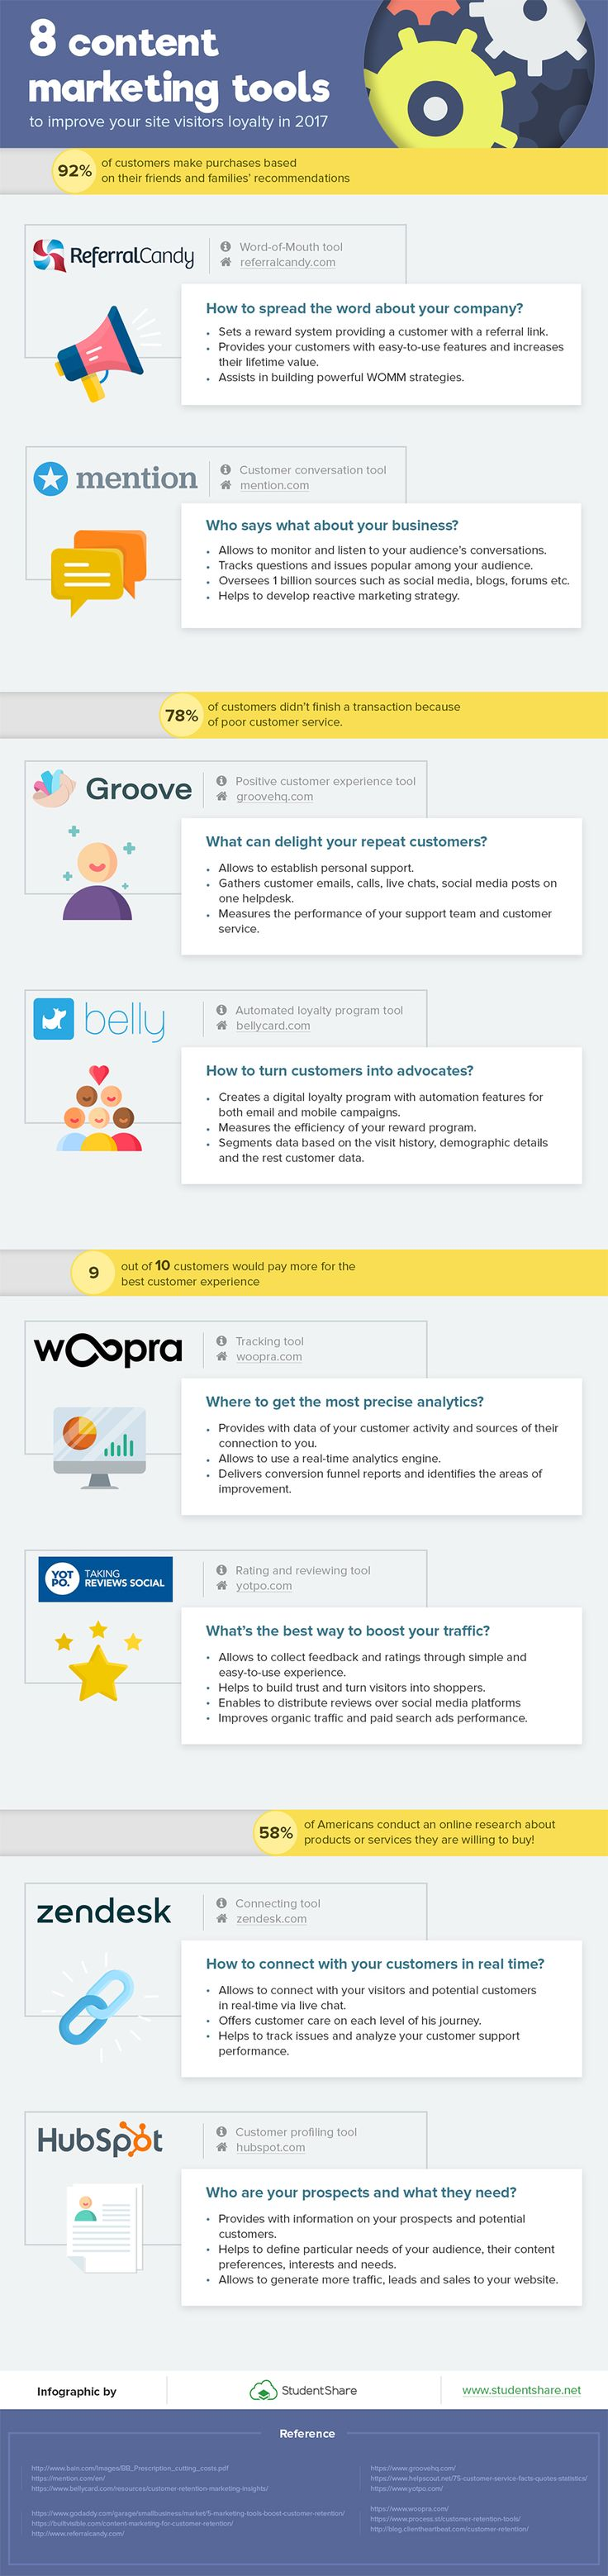 8 Awesome #Marketing Tools to Increase Website Visitor Loyalty #Infographic